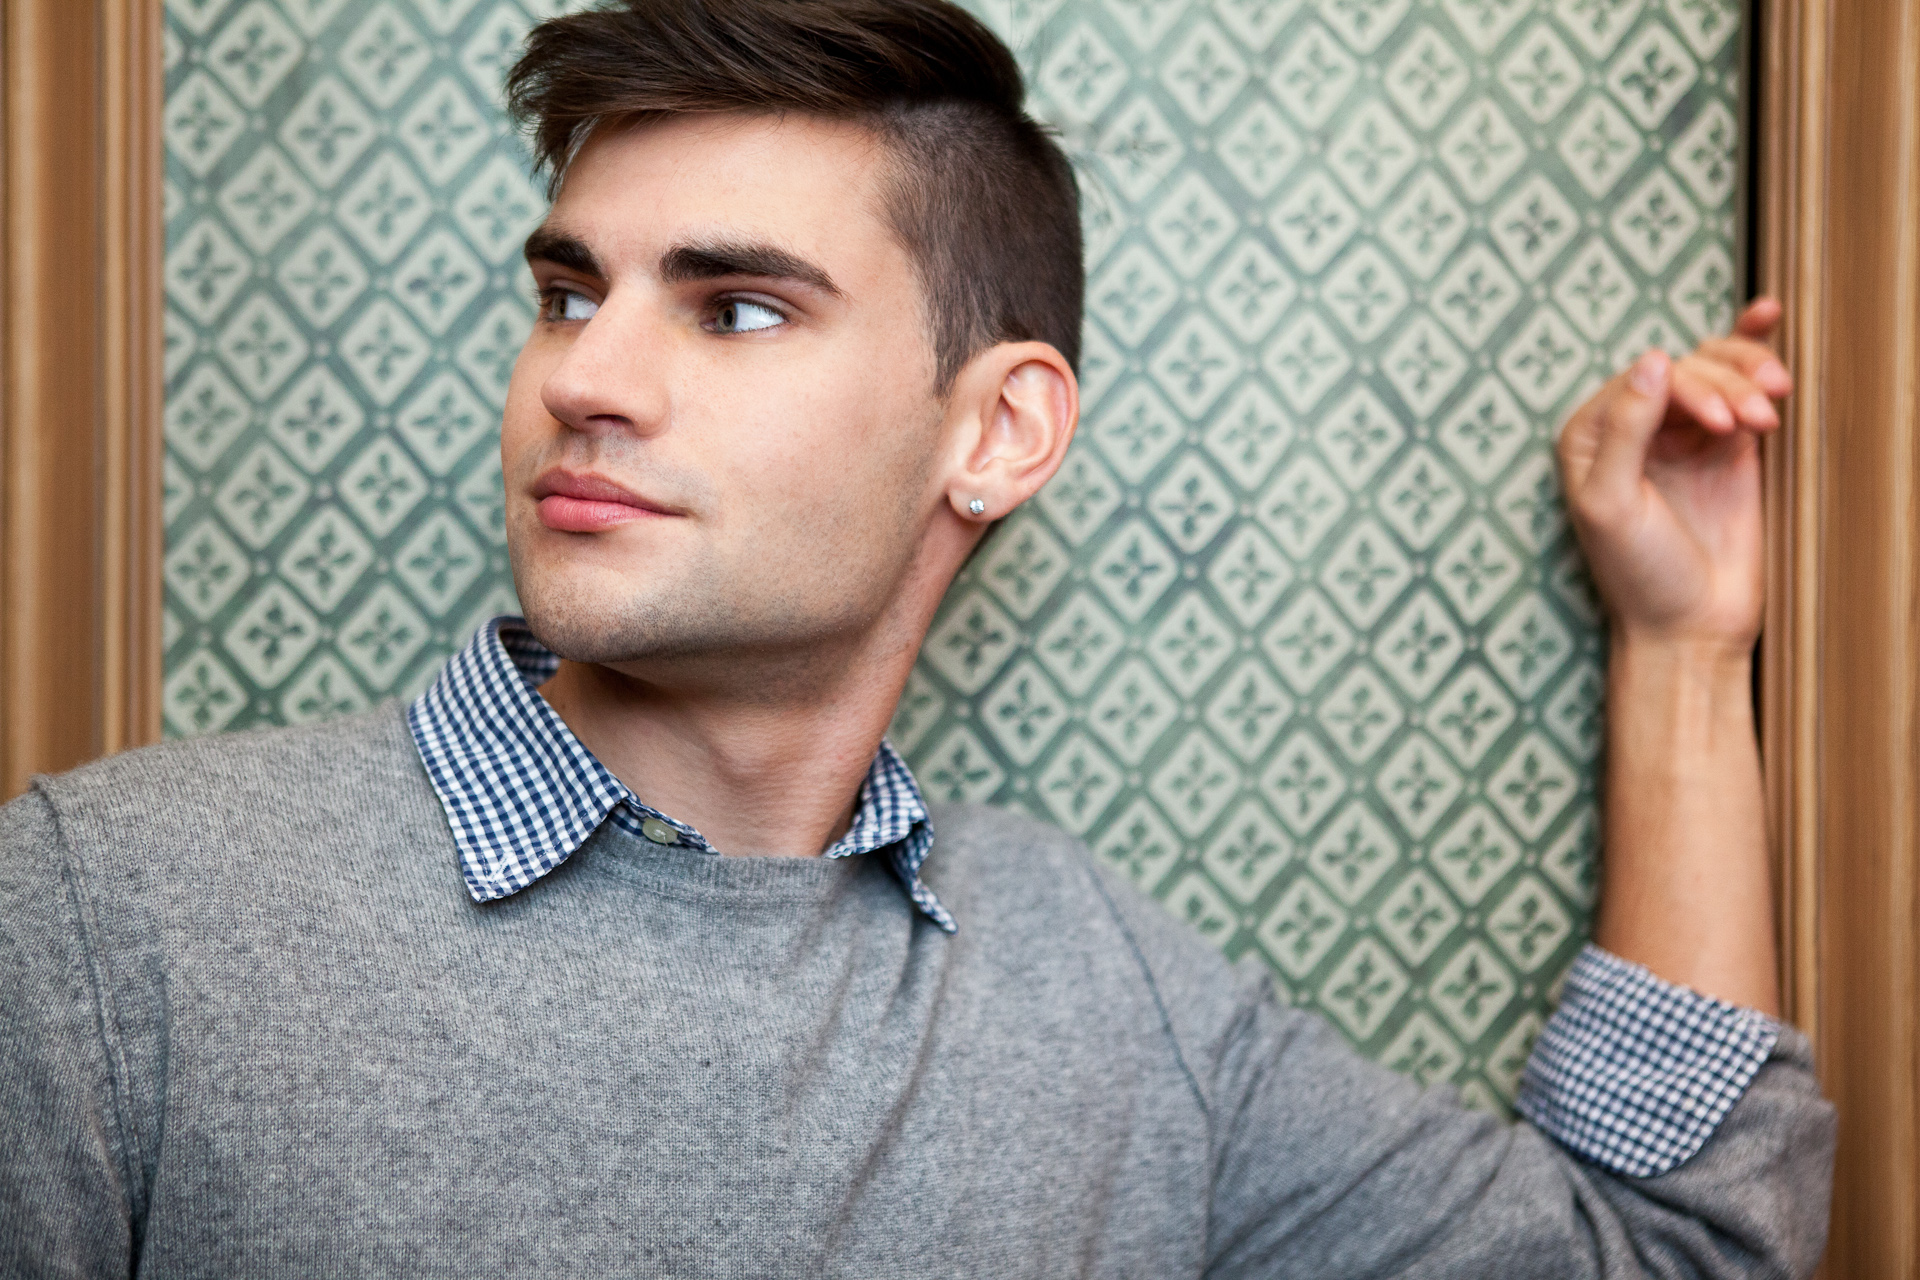 Portrait of a young white man, dressed casually against patterned wallpaper during a shoot in Boston's Beacon Hill Neighborhood.